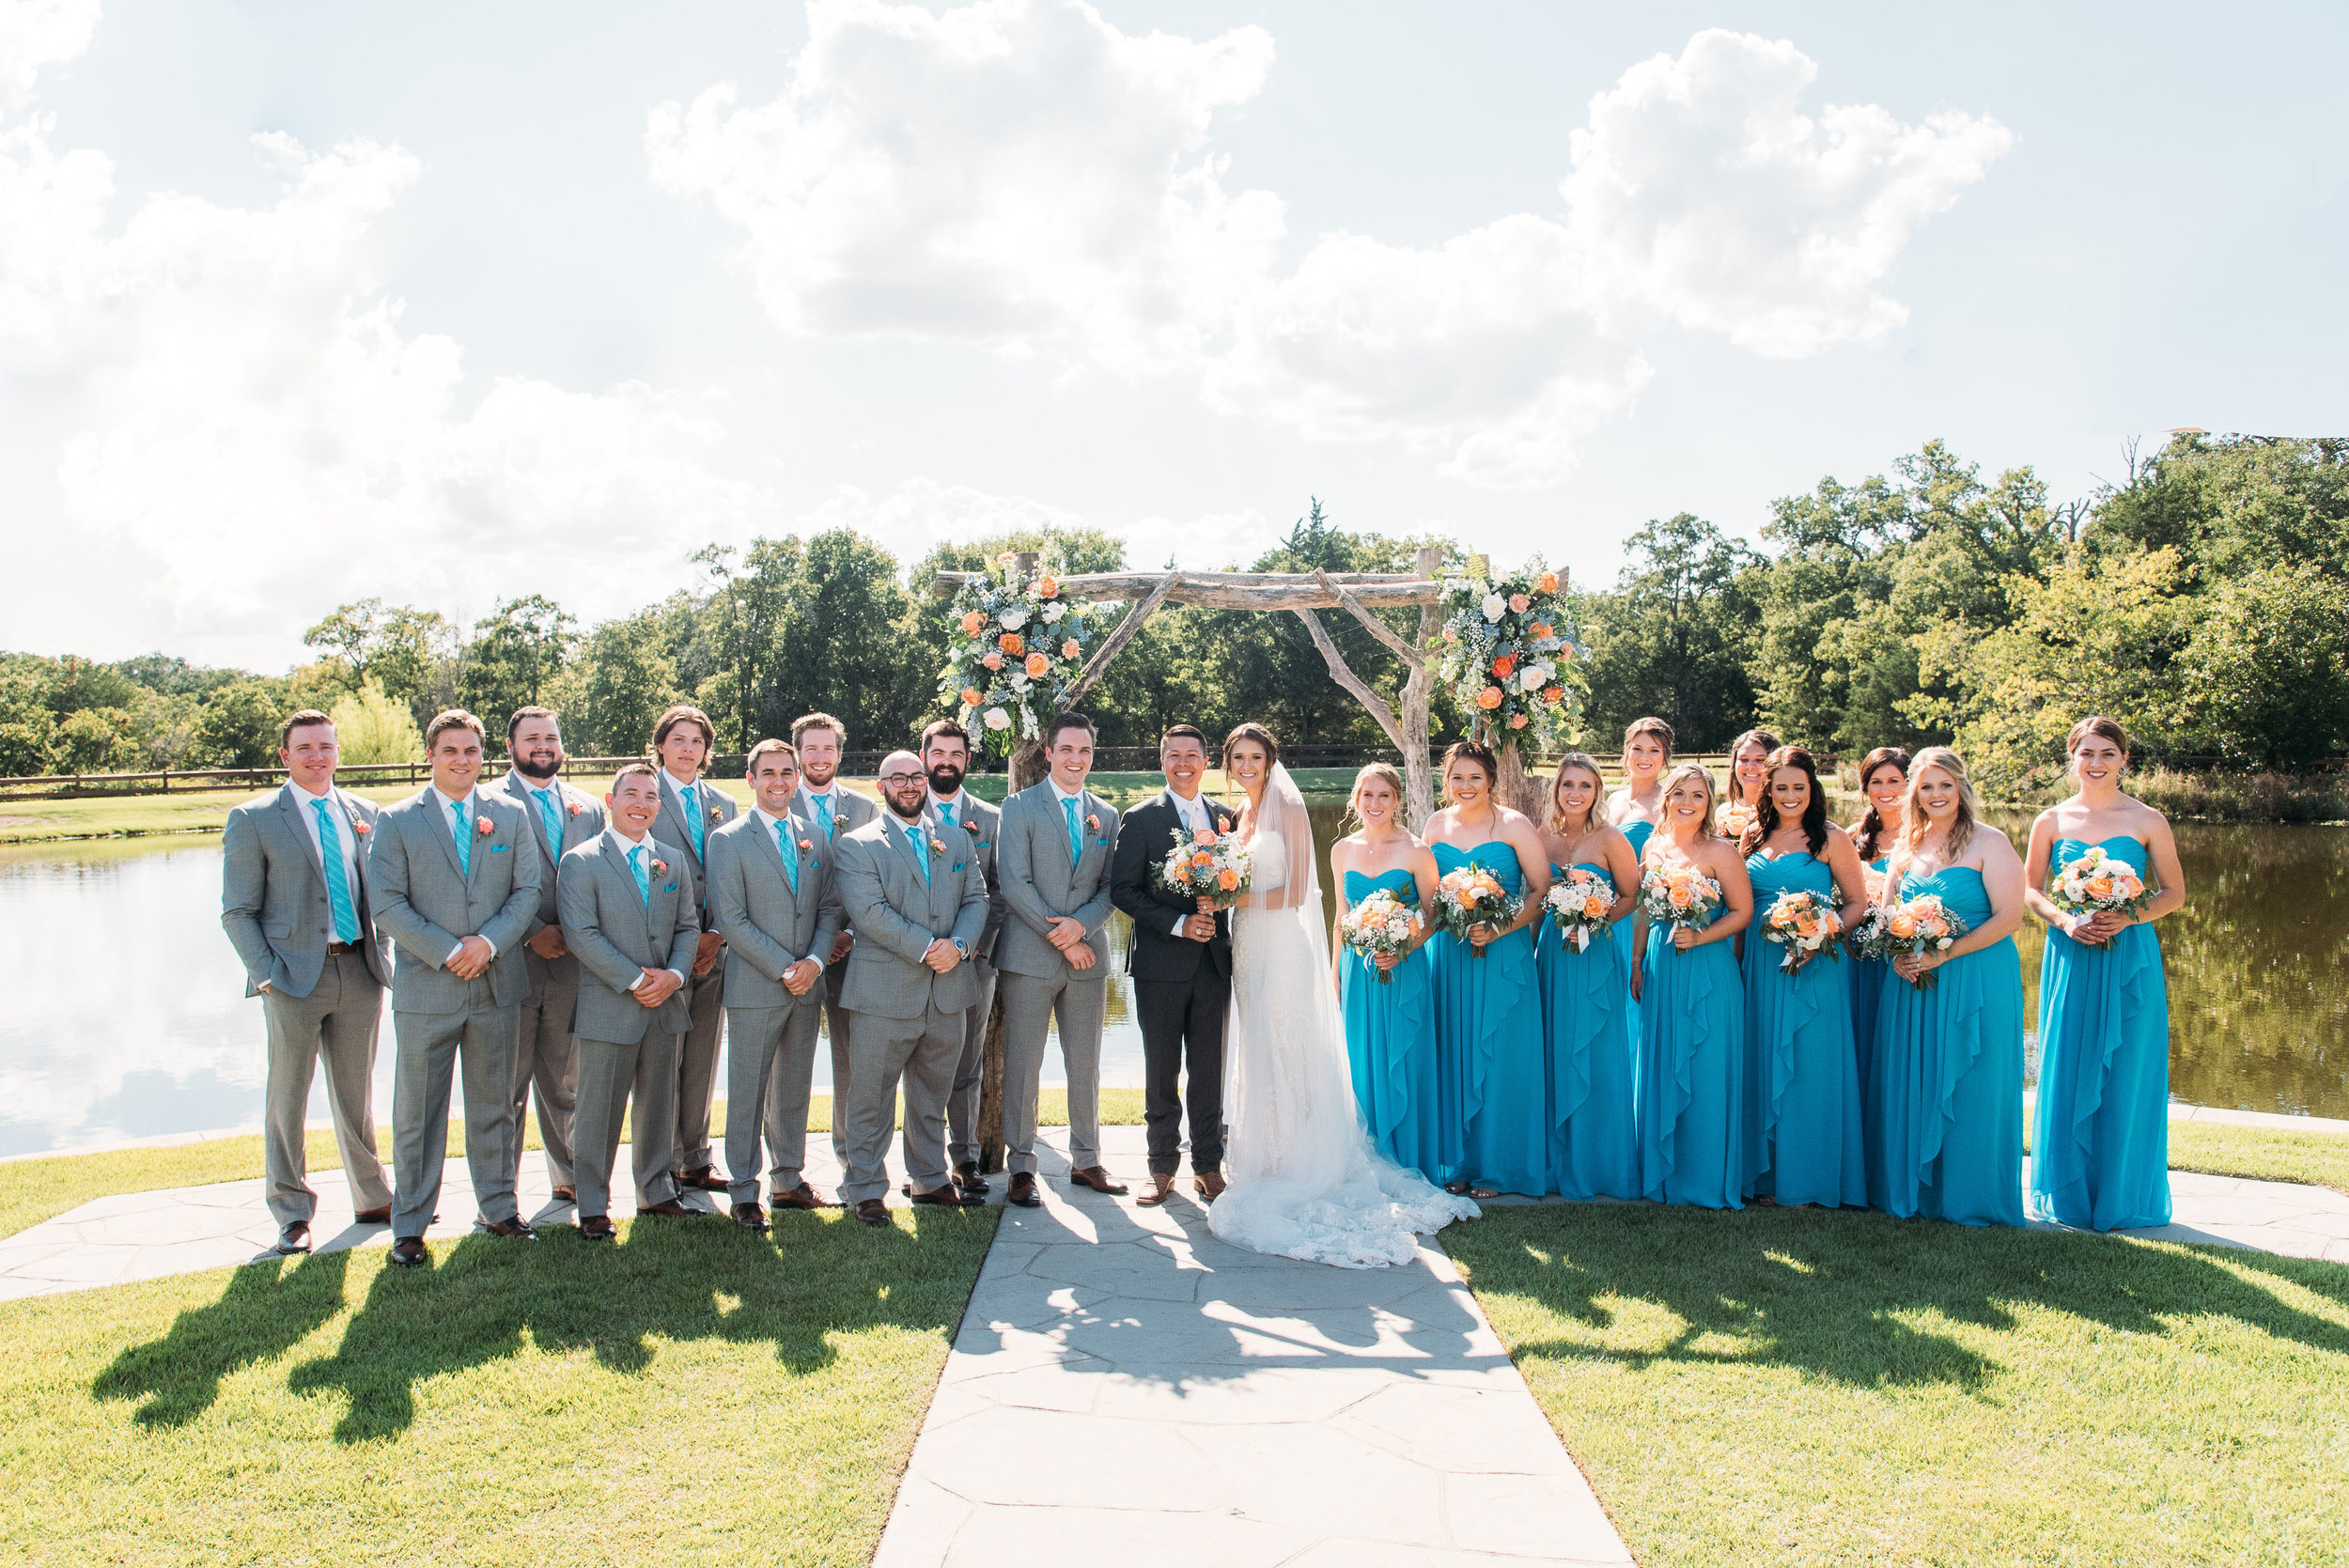 Cameron-Price-Peach-Creek-Ranch-Wedding-Ceremony-Bridals-Engagement-College-Station-Photographer-Videographer-San-Angel-Photo-00-0065.jpg